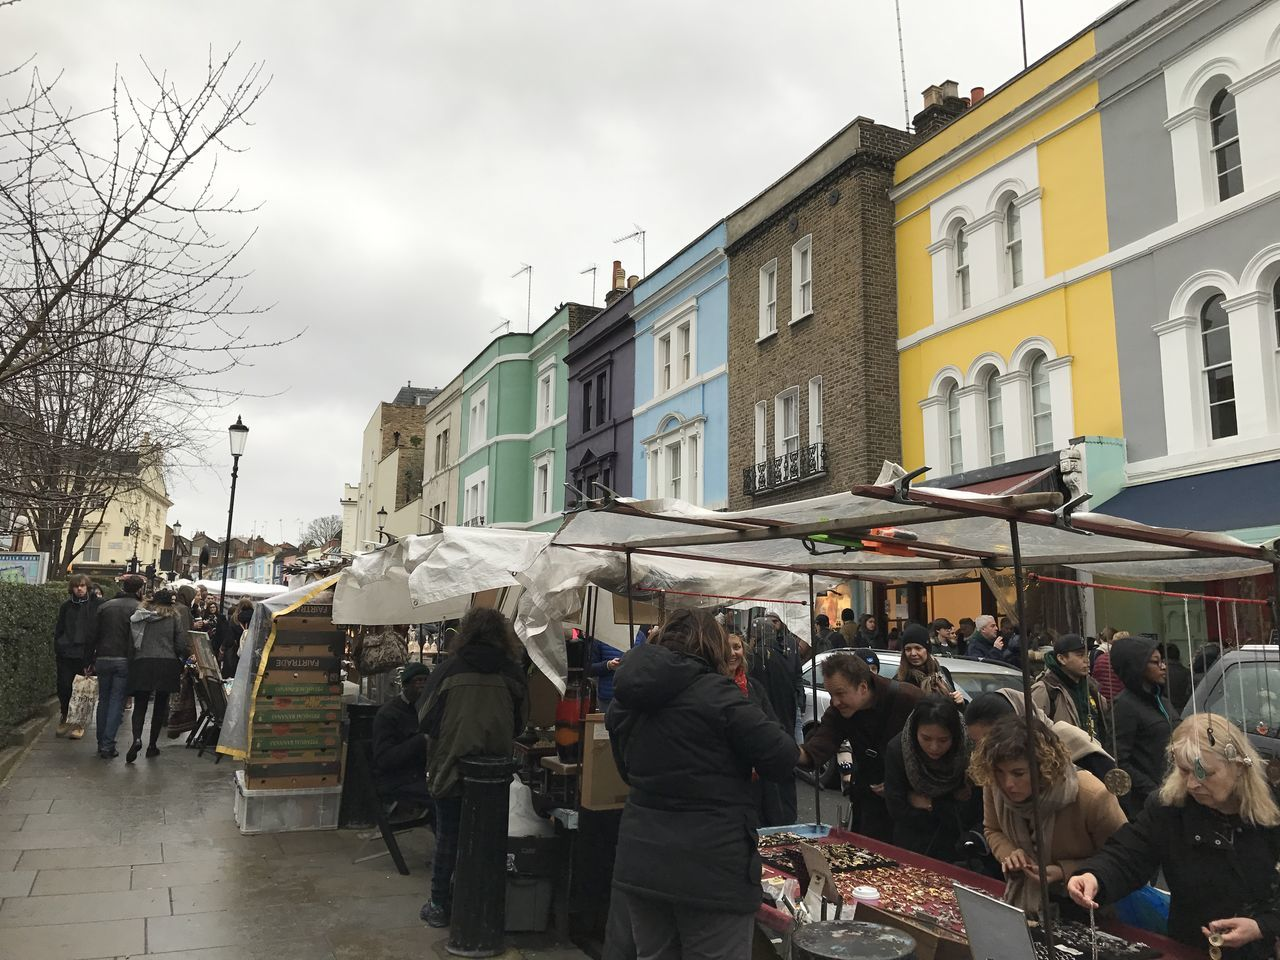 Adult Adults Only Architecture Building Exterior Built Structure City Day Large Group Of People London Men Outdoors People Portobello Market Portobello Road Real People Sky United Kingdom Women EyeEm LOST IN London